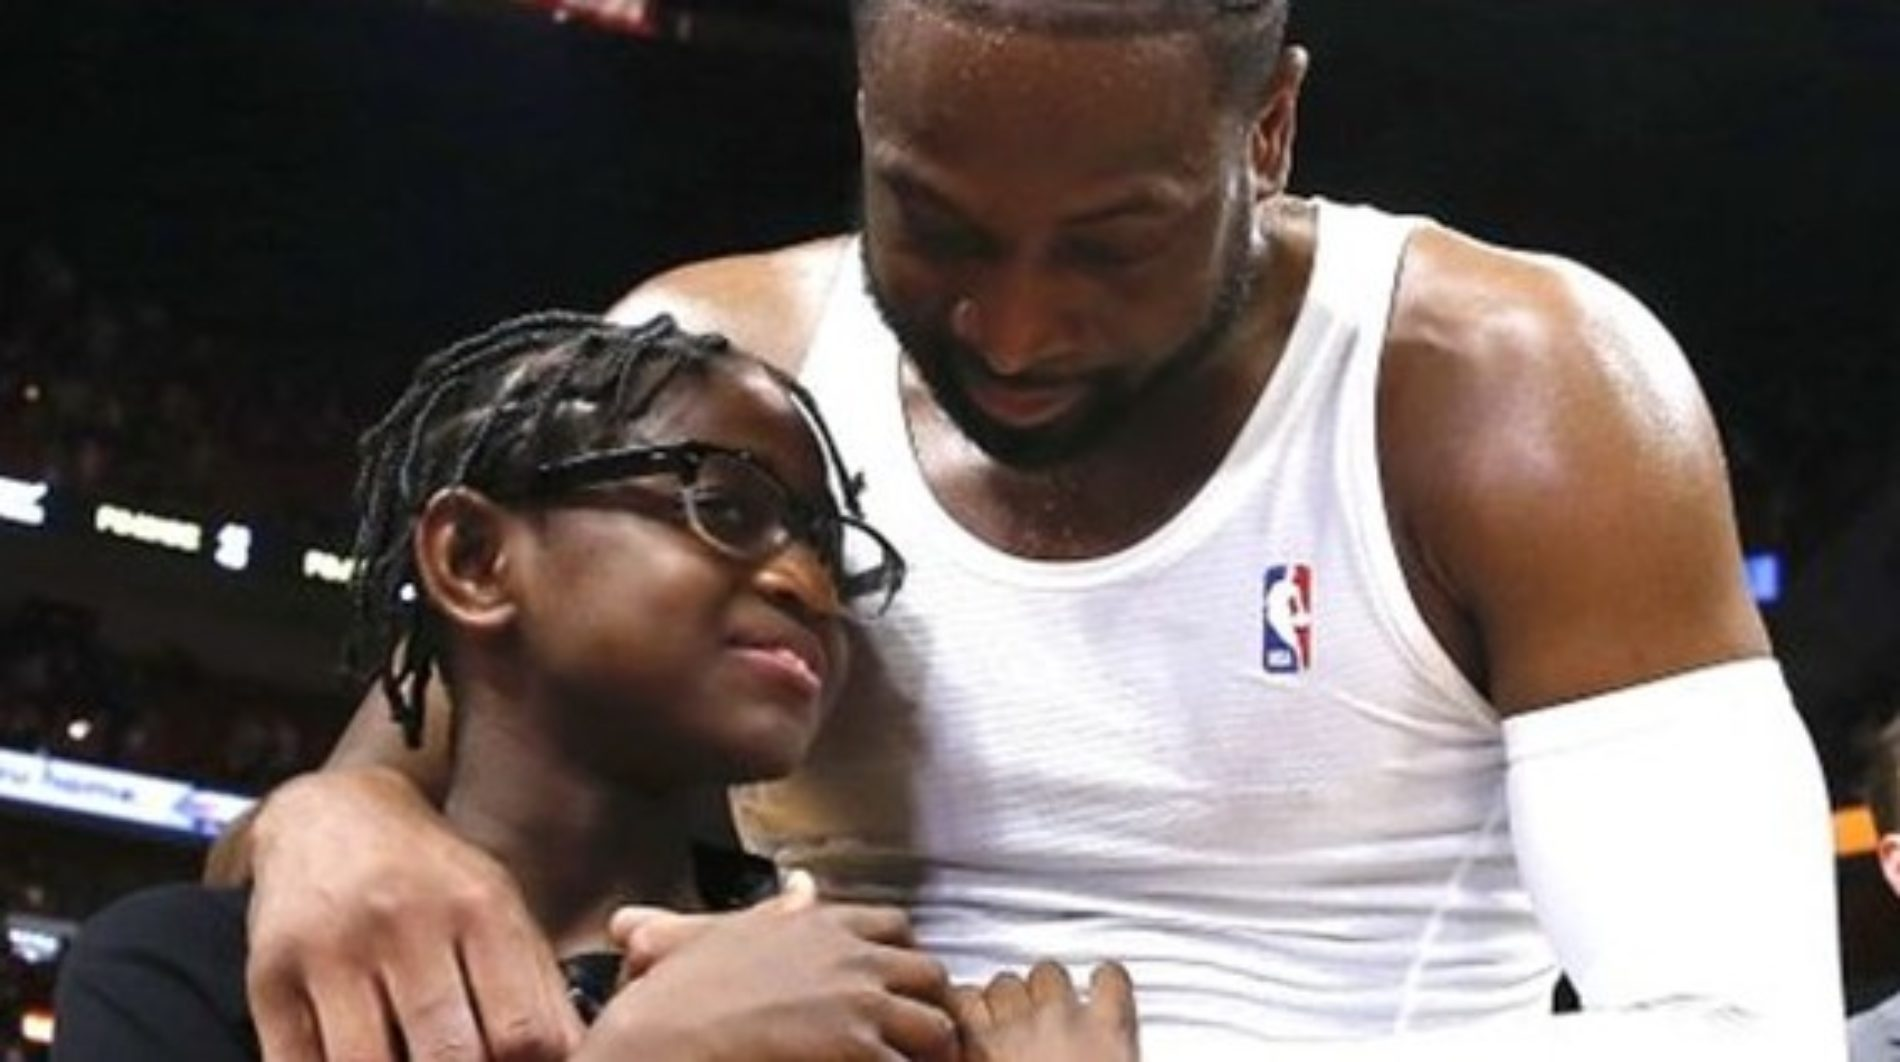 Opinion: Dwyane Wade's Kid Underscores How Gender Fluidity Is Erasing Homosexuality